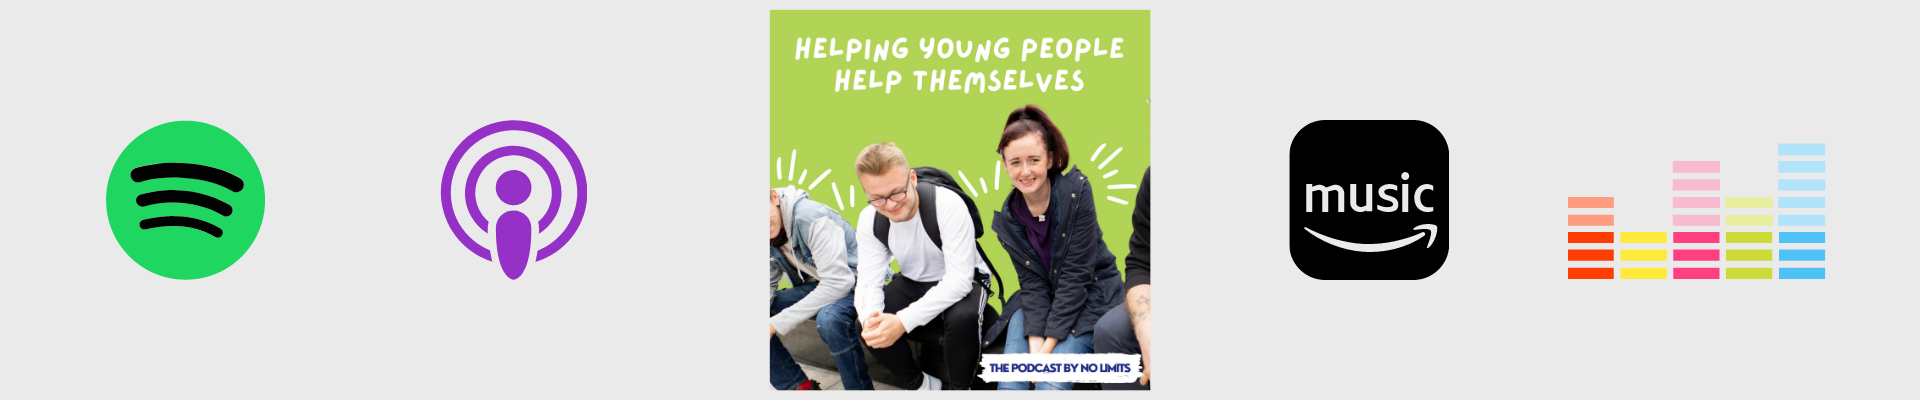 <p>Helping young people help themselves</p>